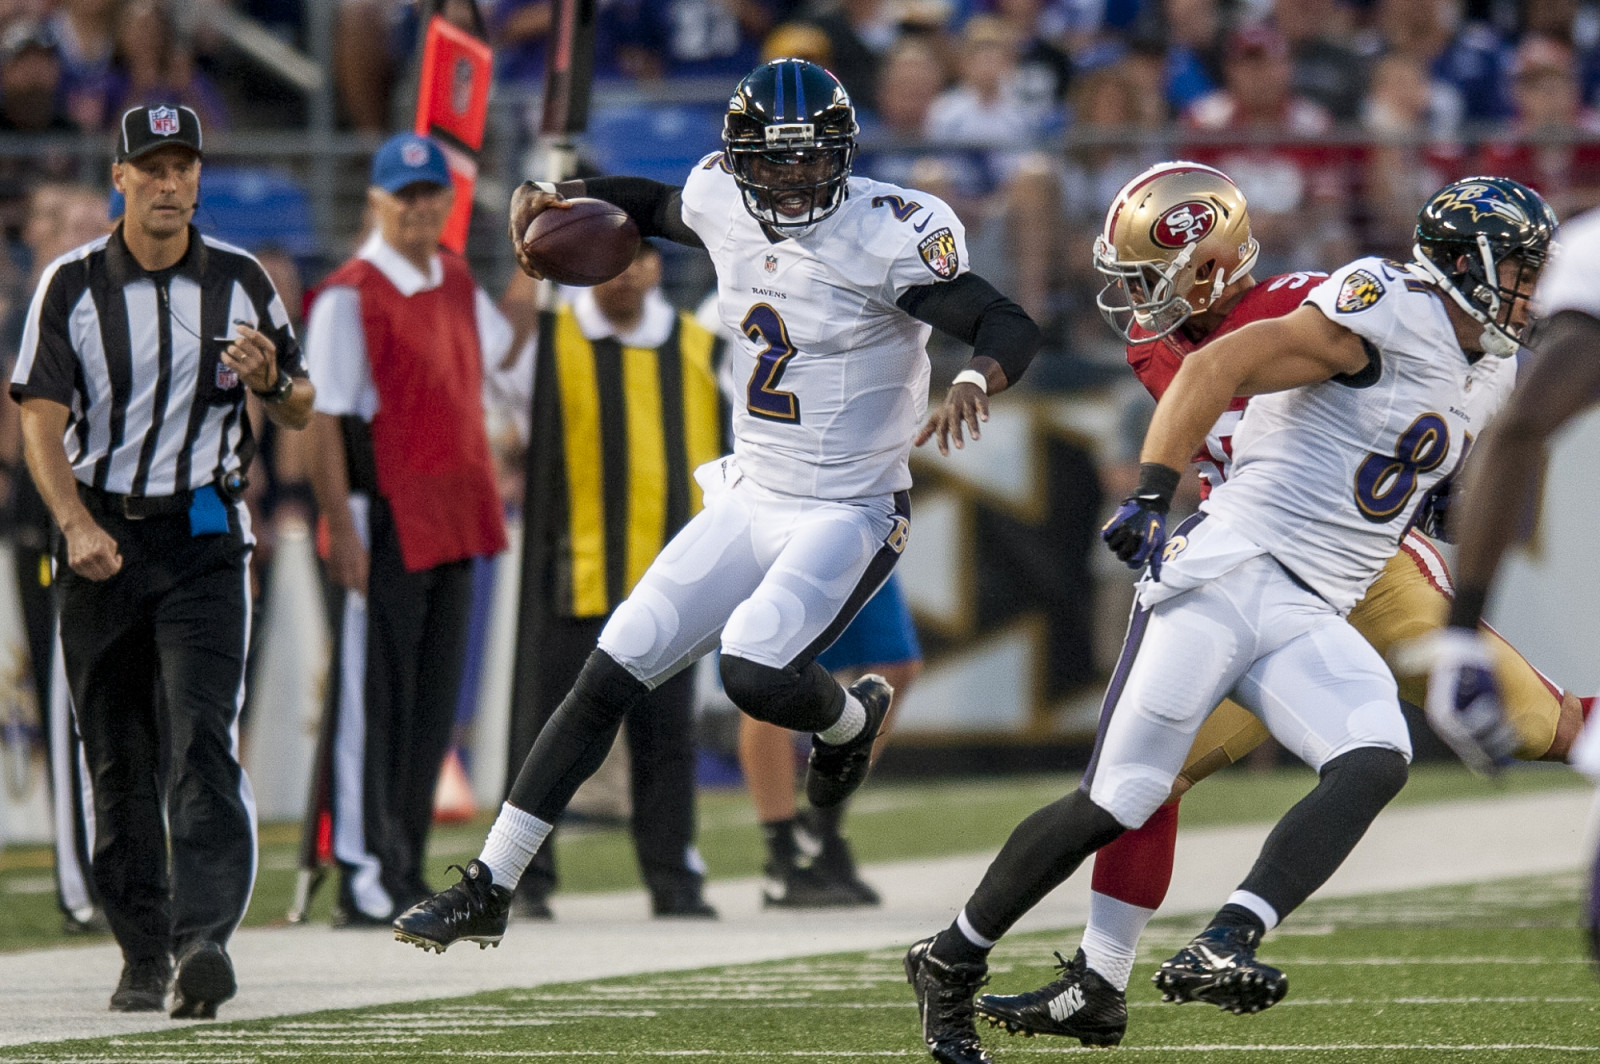 Baltimore Ravens quarterback Tyrod Tayor runs the ball against the San Francisco 49ers during the first quarter of their pre-season game at M&T Bank Stadium on August 7, 2014 in Baltimore, Maryland. UPI/Pete Marovich